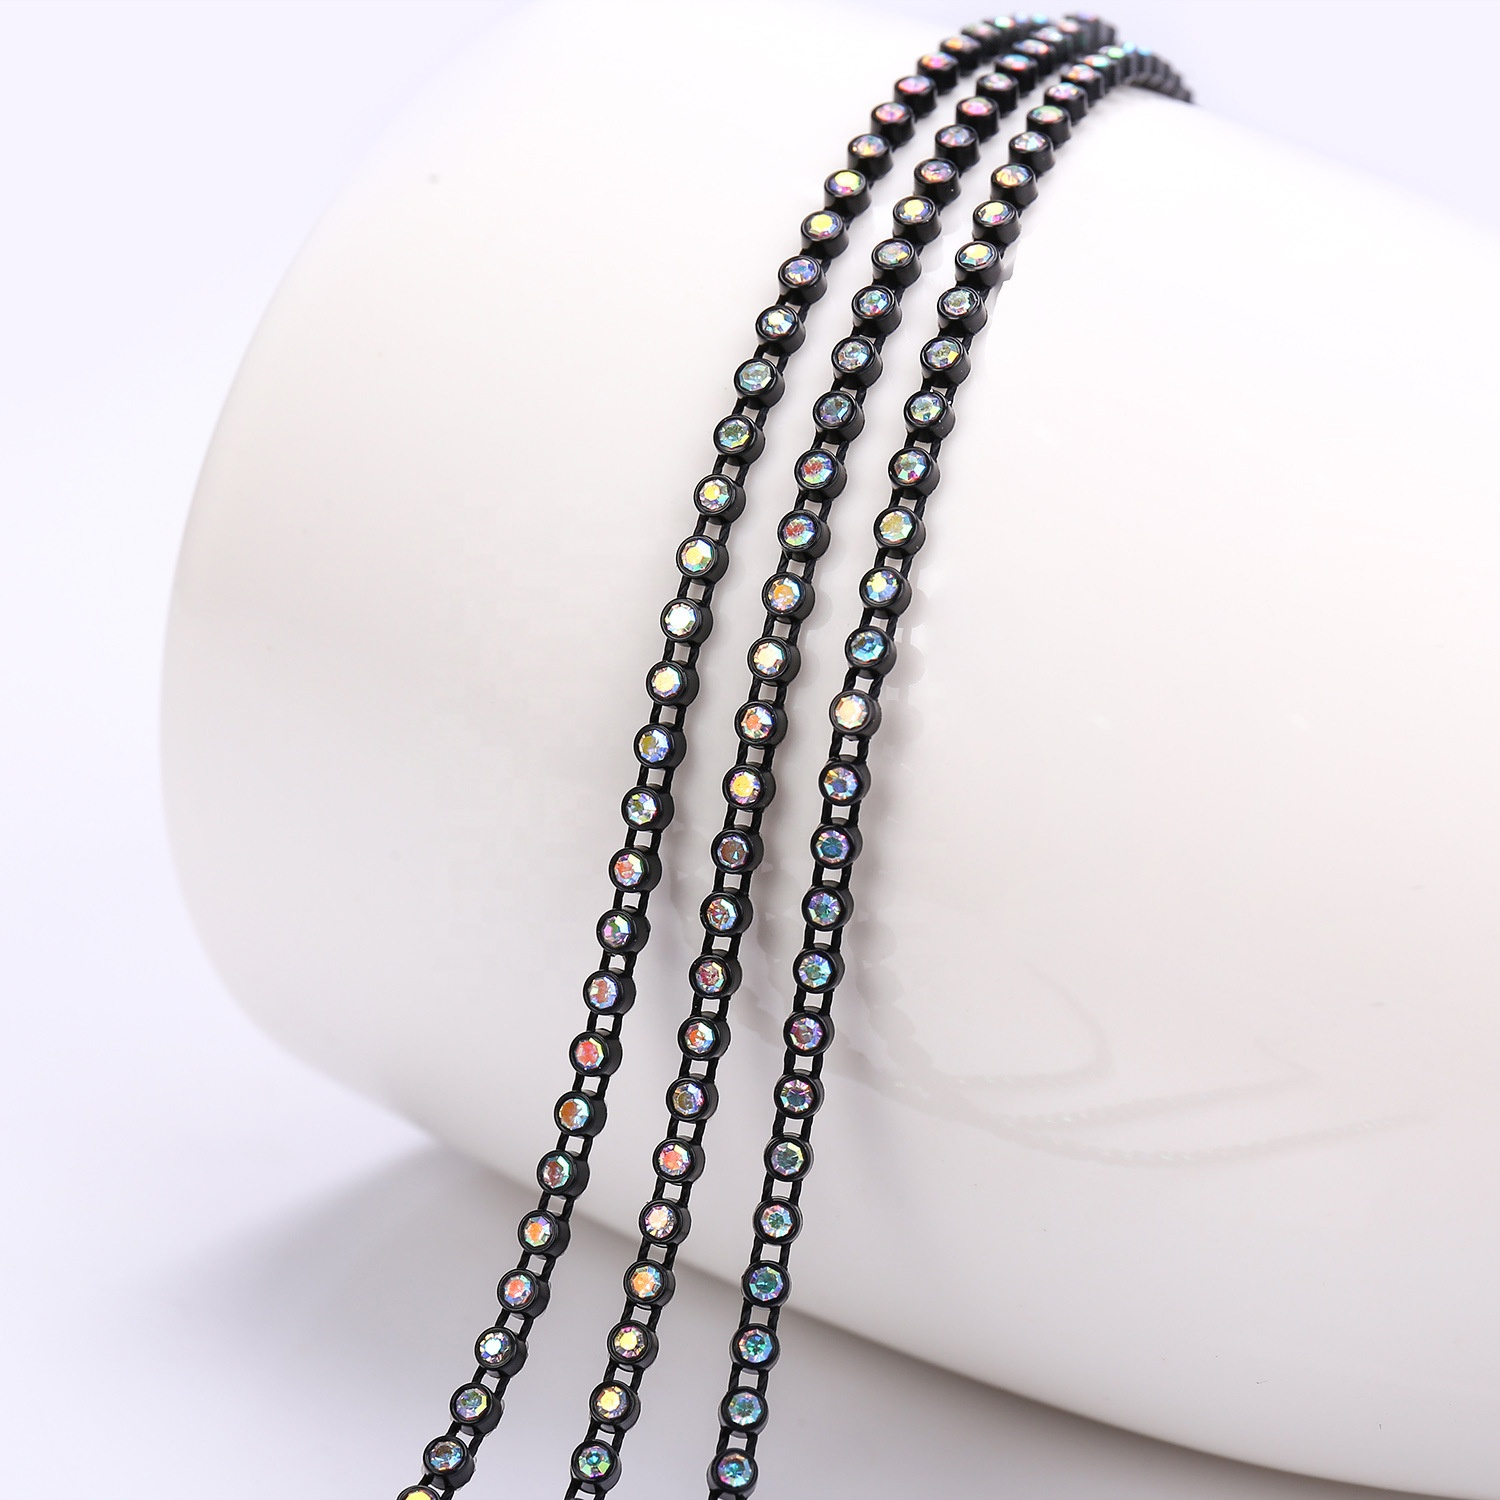 SS6 SS8 RHINESTONE BANDING CRYSTAL FANCY STONE CHAIN TRIMMING FOR DRESS